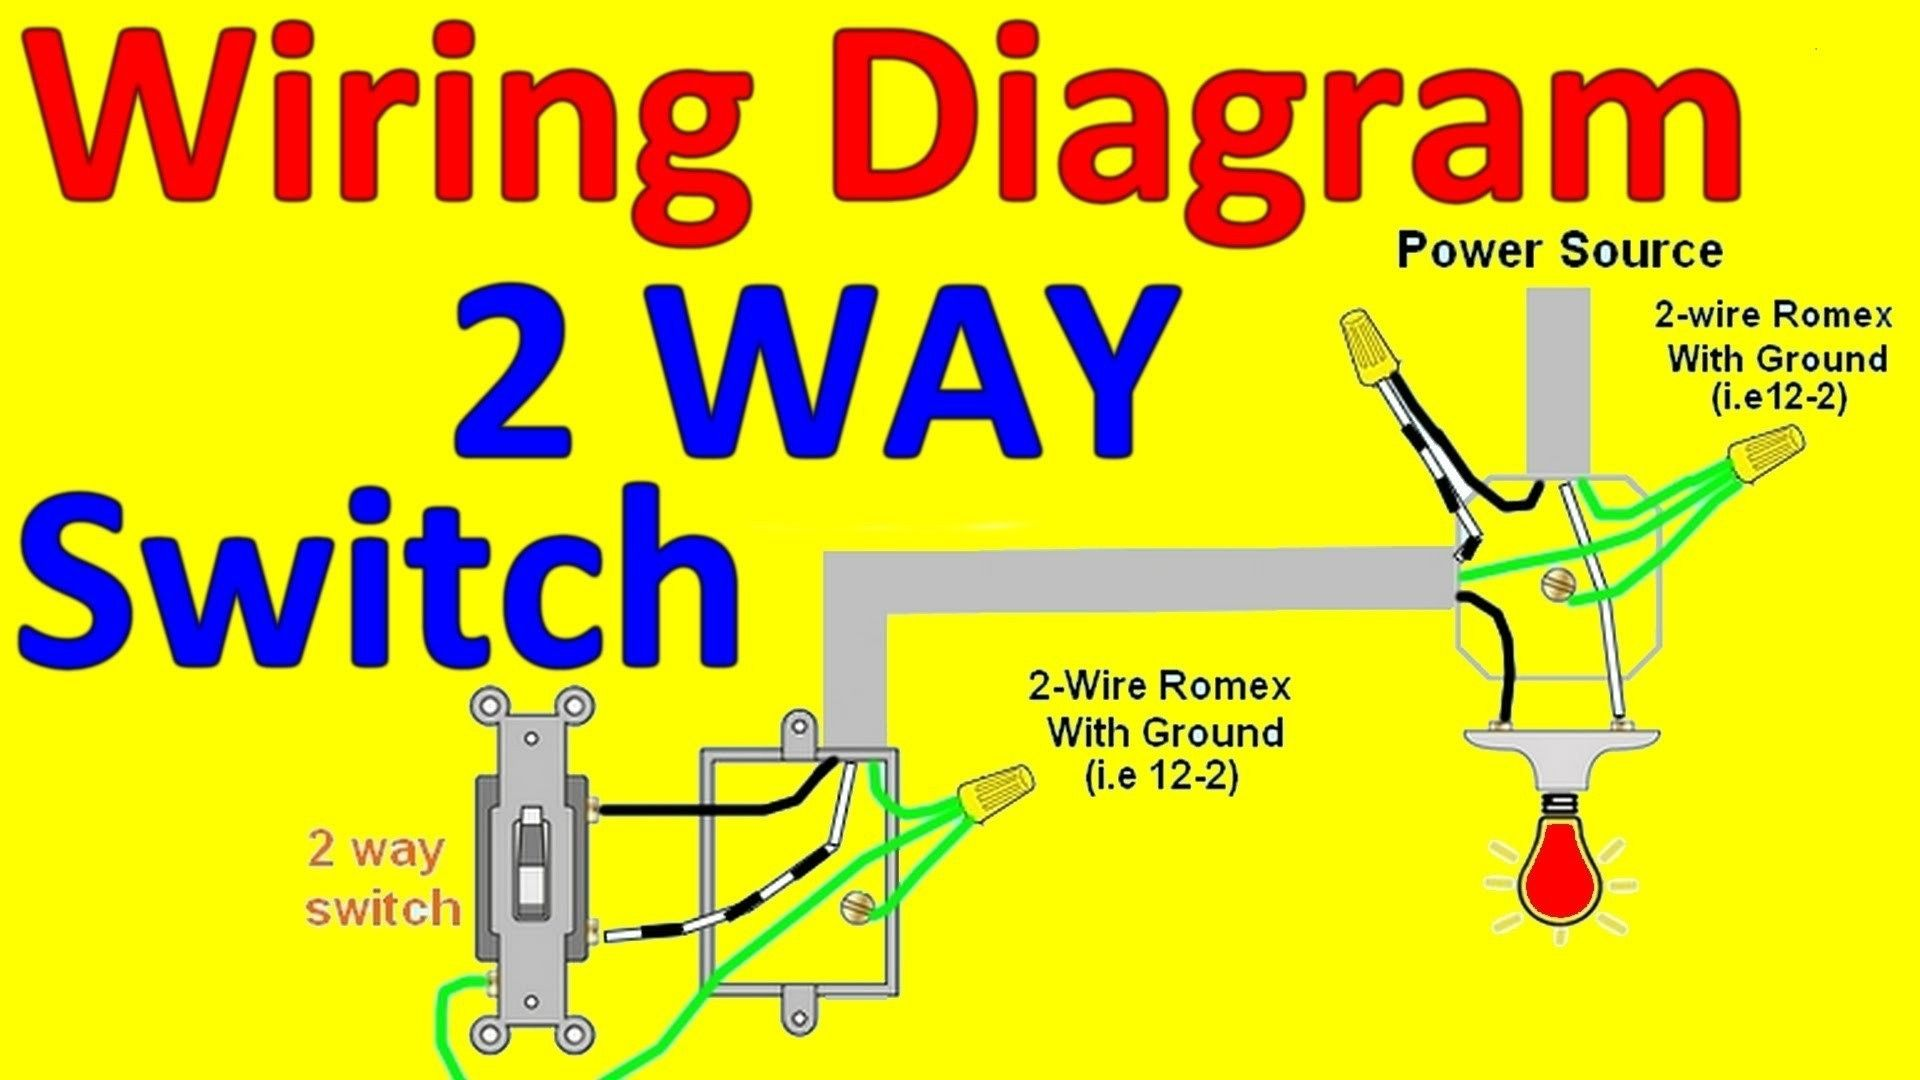 New 2 Way Switch Wiring Diagram Home Diagram Diagramsample Diagramtemplate Wiringdiagram Diagramchart Worksh Light Switch Wire Lights Light Switch Wiring